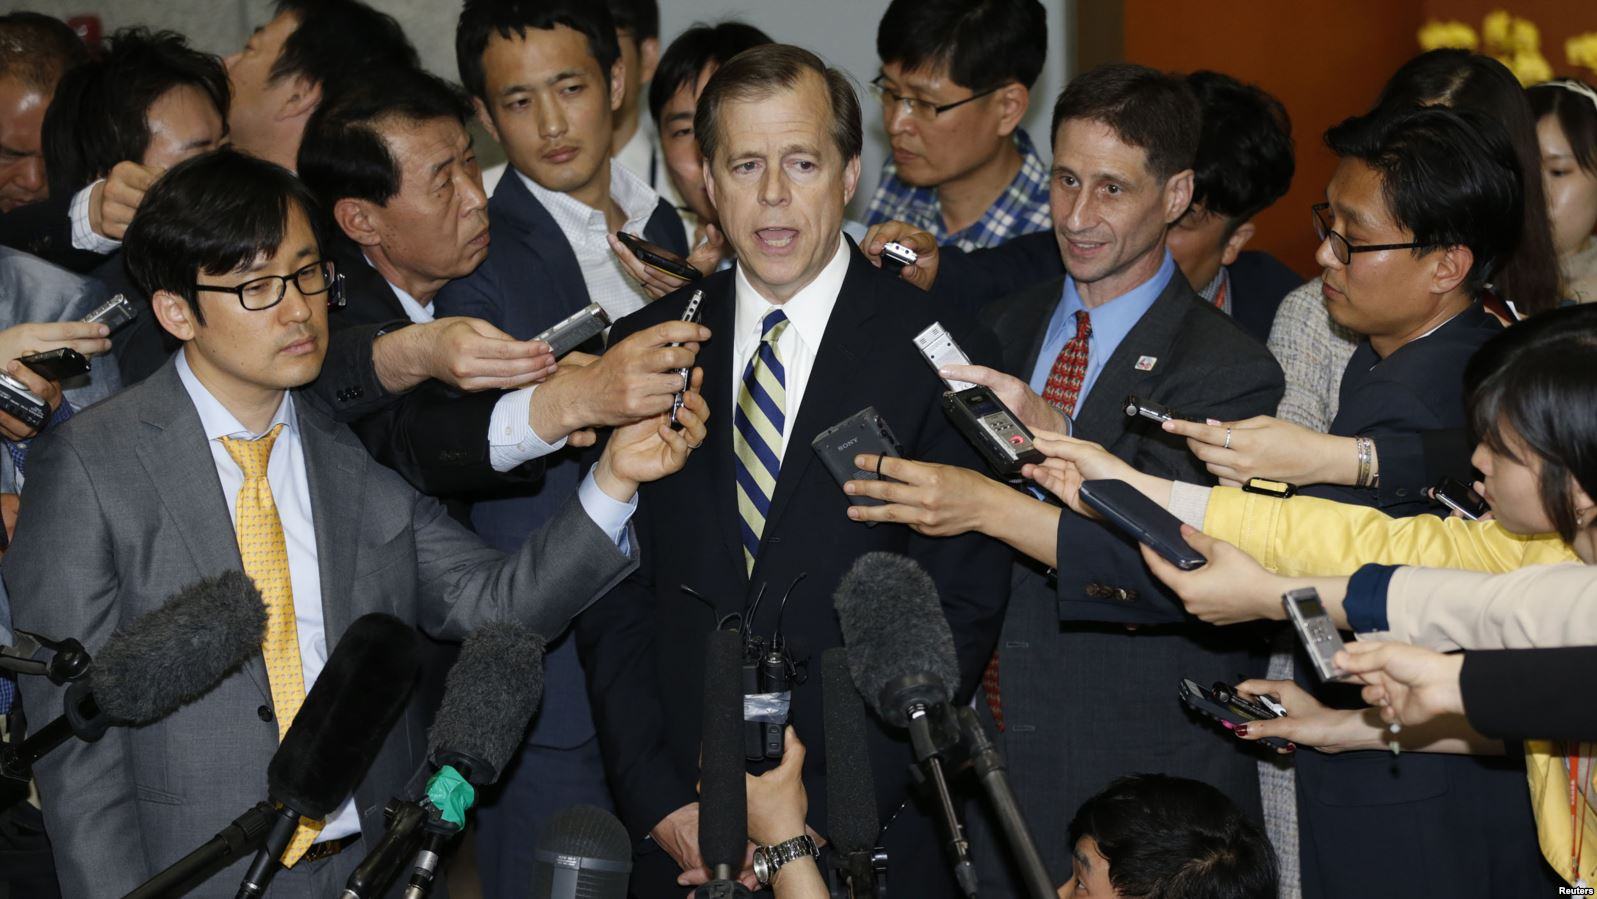 U.S. Special Representative for North Korea Policy Glyn Davies answers reporters' questions after his talks with South Korean chief delegate to the six-party talks on North Korea's denuclearization in February 2012. ( Photo via VOA )